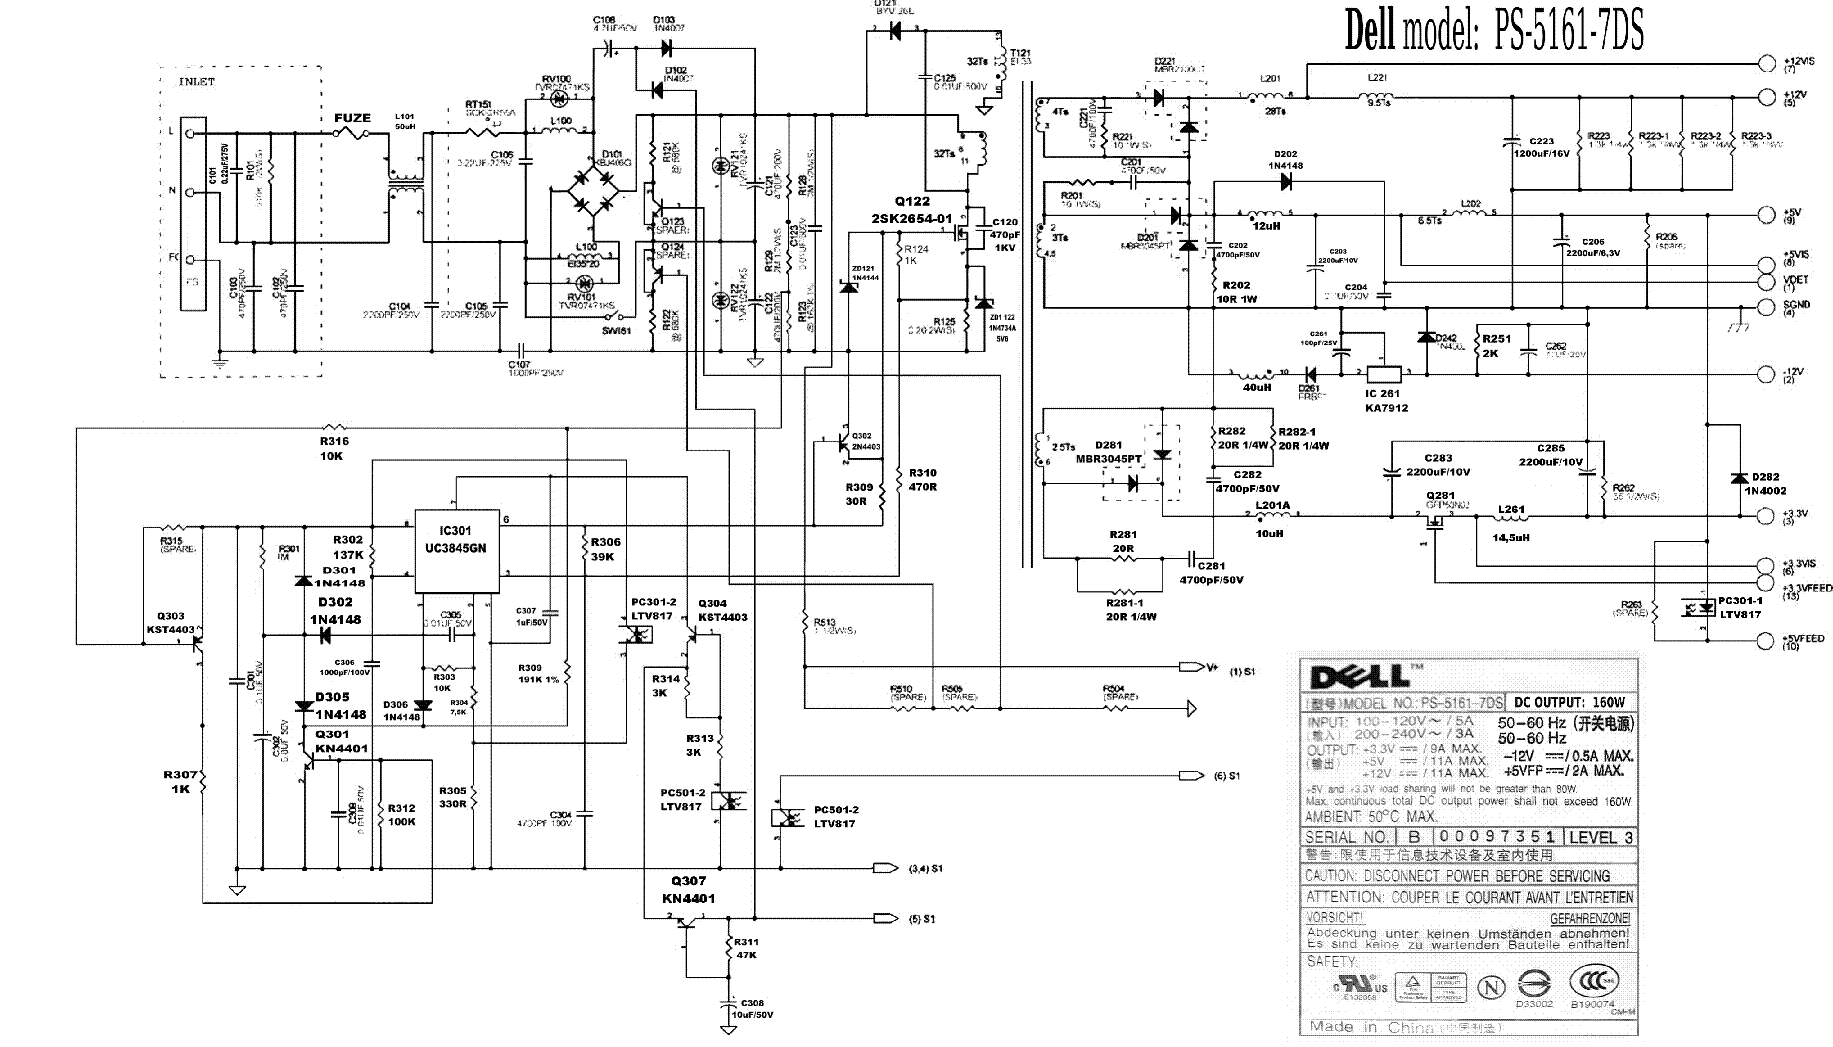 dell_ps 5161_7ds_power_supply_schematic.pdf_1 dell ps 5161 7ds power supply schematic service manual download dell inspiron 1520 ac adapter wiring diagram at panicattacktreatment.co